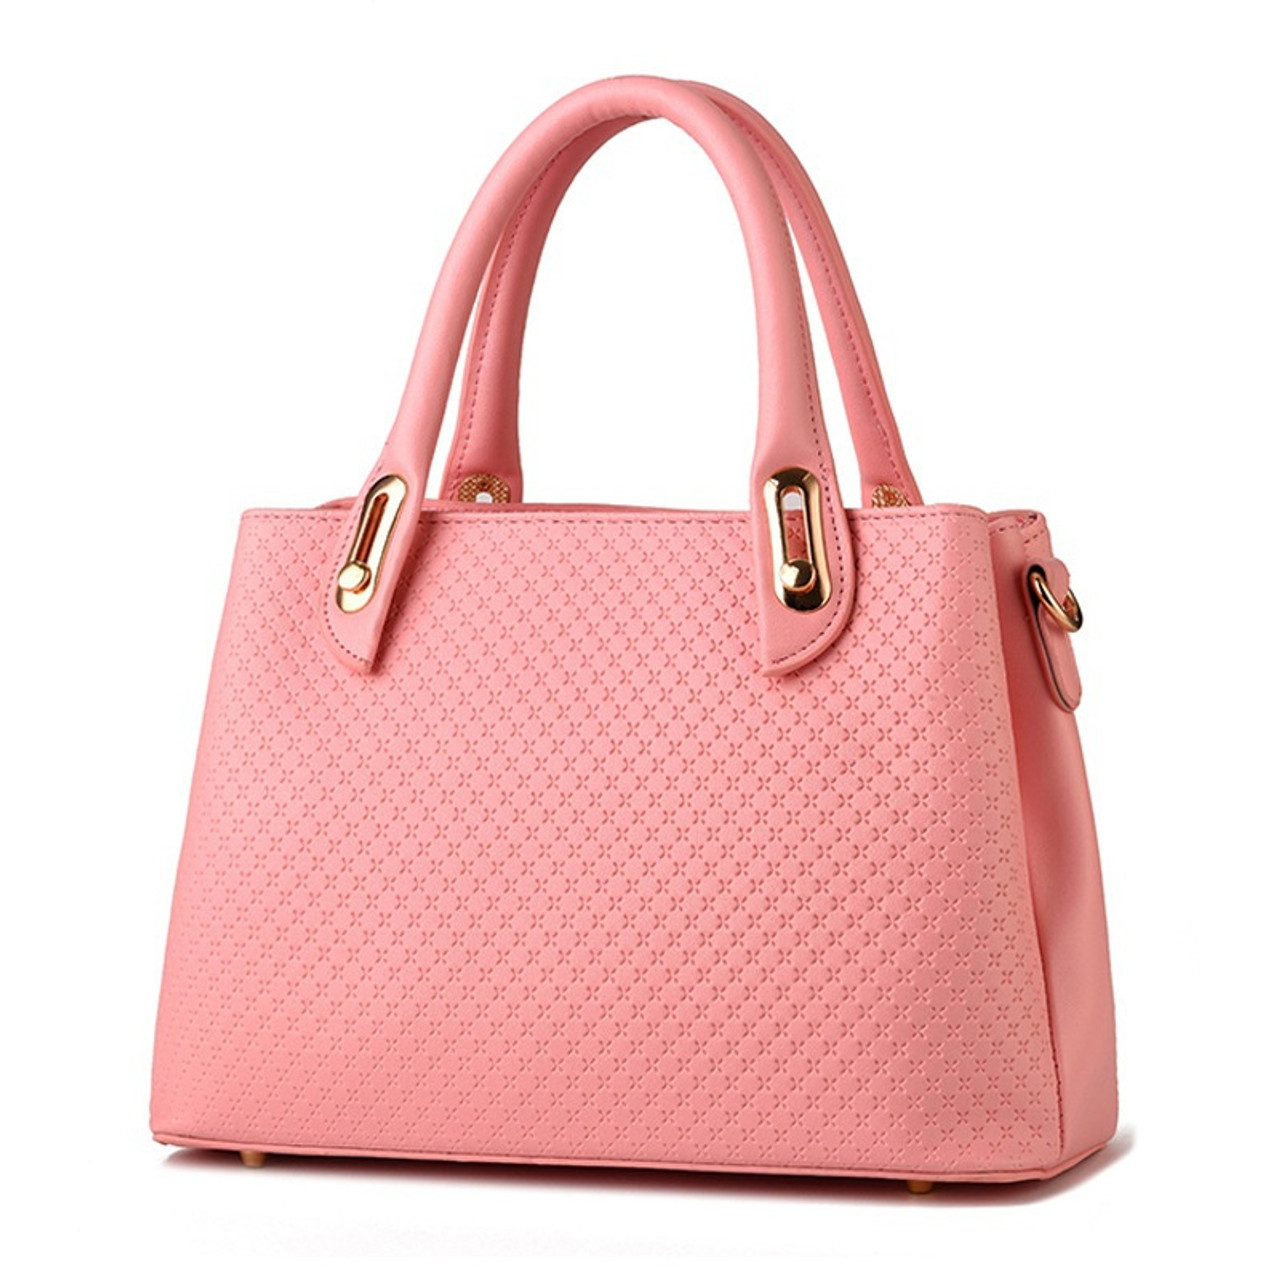 38c22cf33ae New Female Bag In Europe and The Stereotyped Fashion Female Bag Worn One  Shoulder Bag